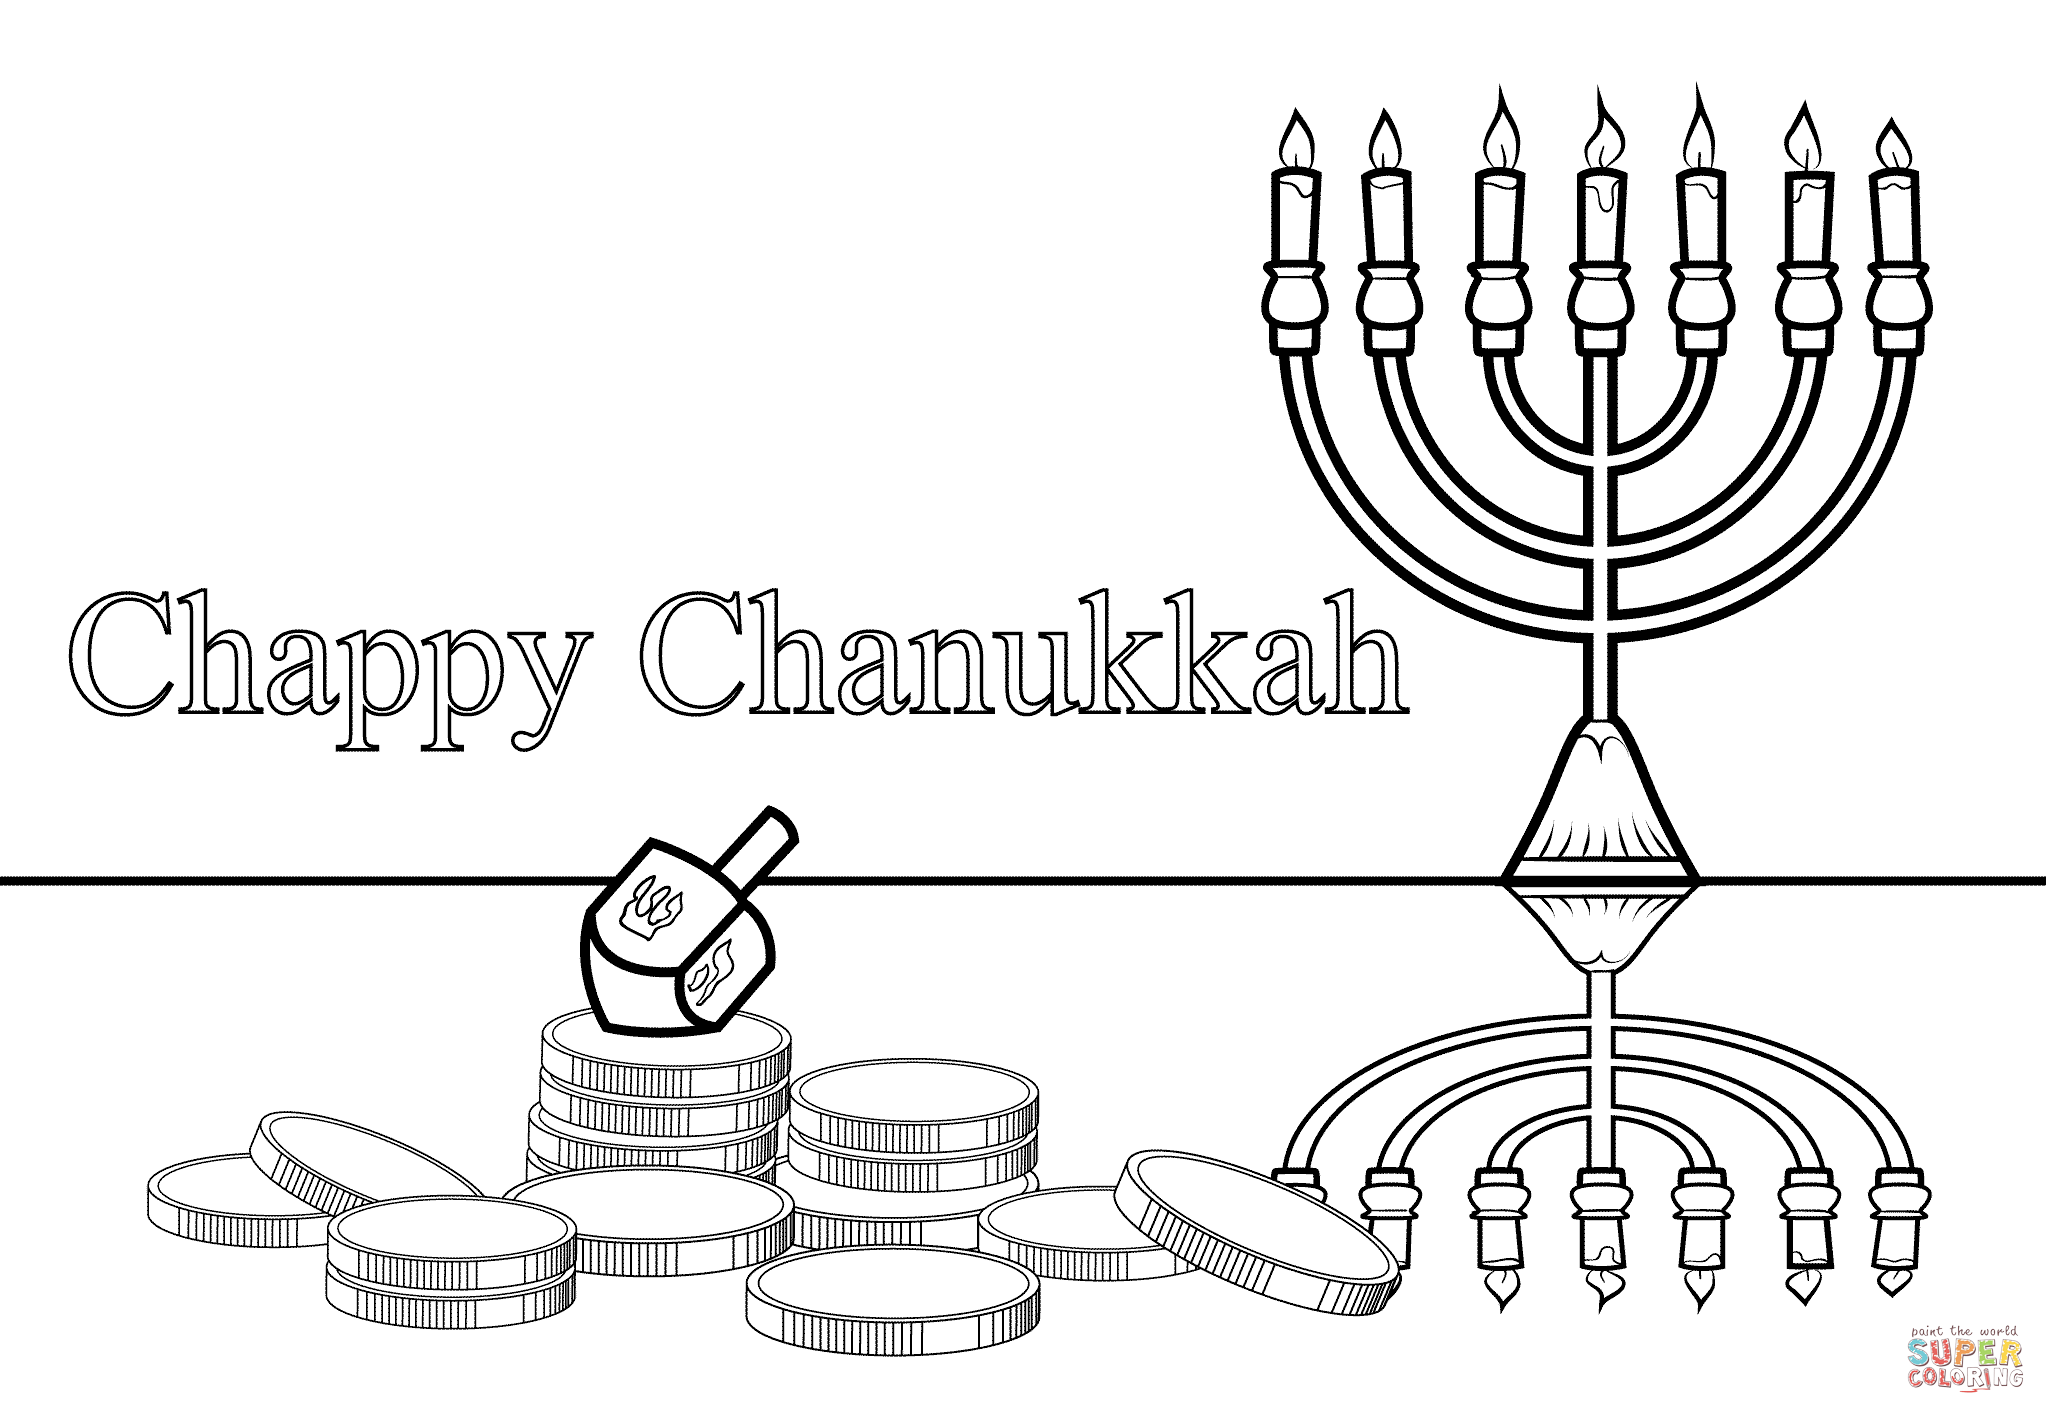 Chappy Chanukah coloring page | Free Printable Coloring Pages